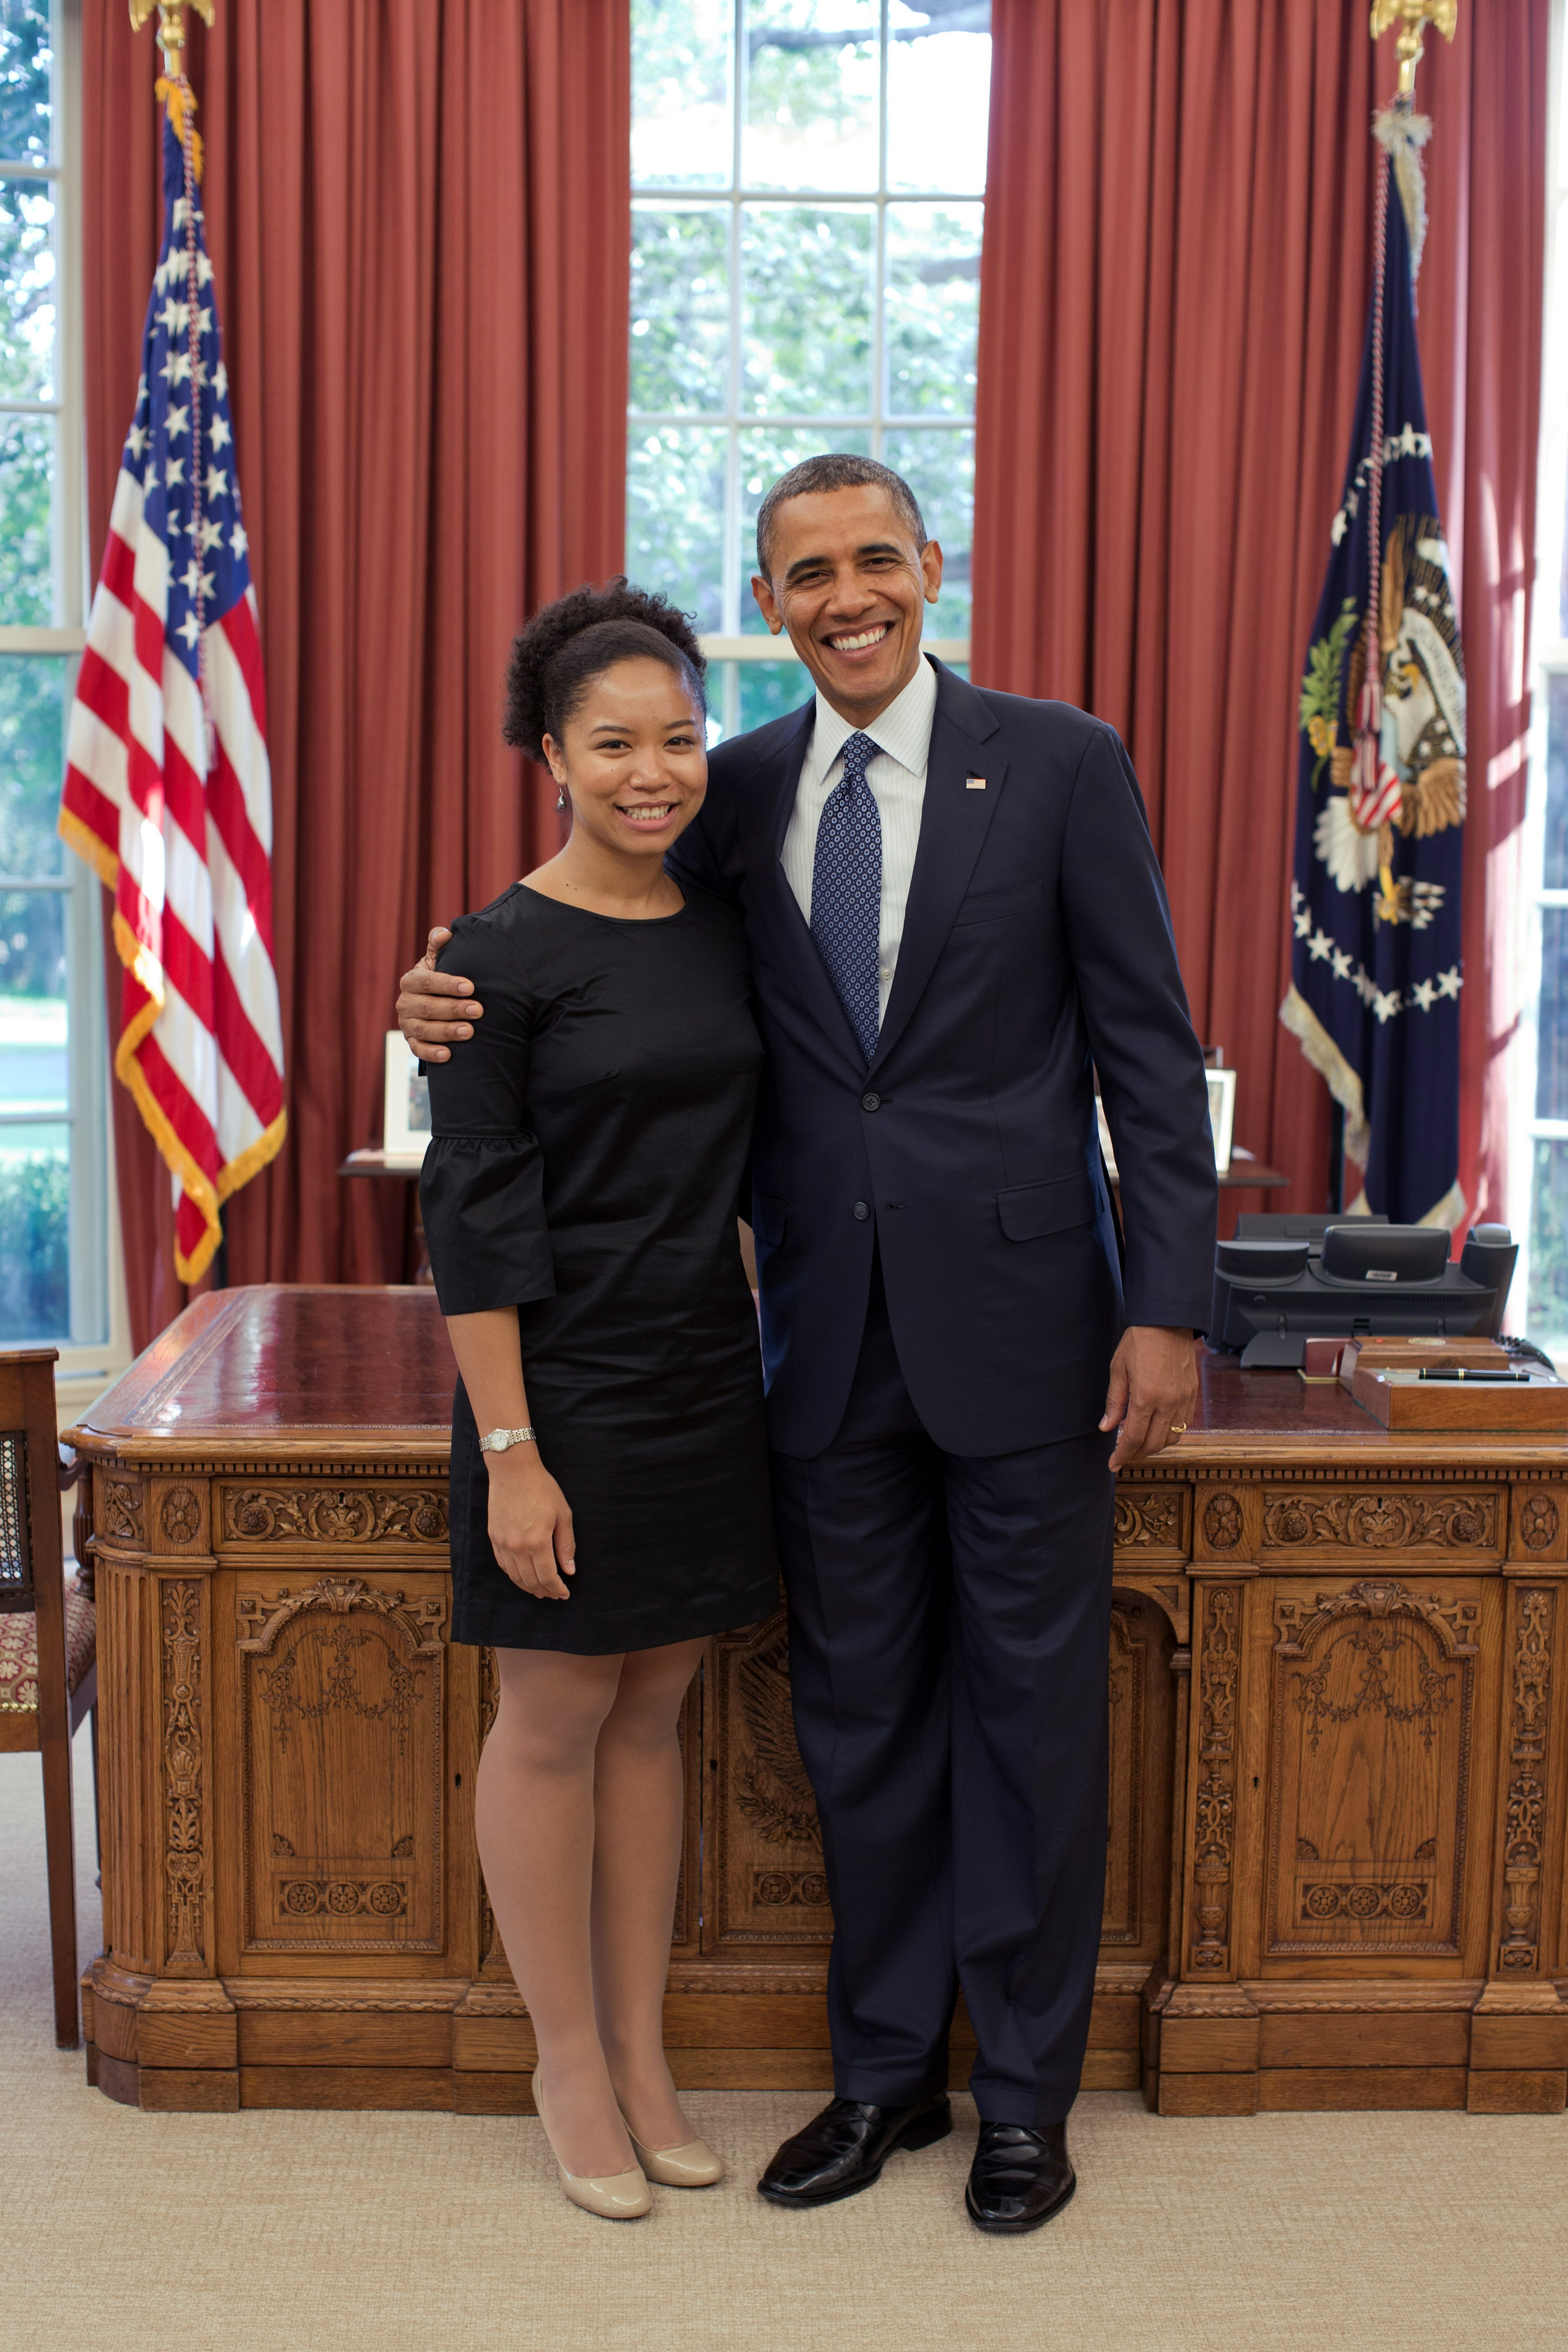 Student, Aerica Banks, recipient of Truman, PPIA, Udall, and (unknown) fellowships pictured with former United States president, Barack Obama, in the oval office